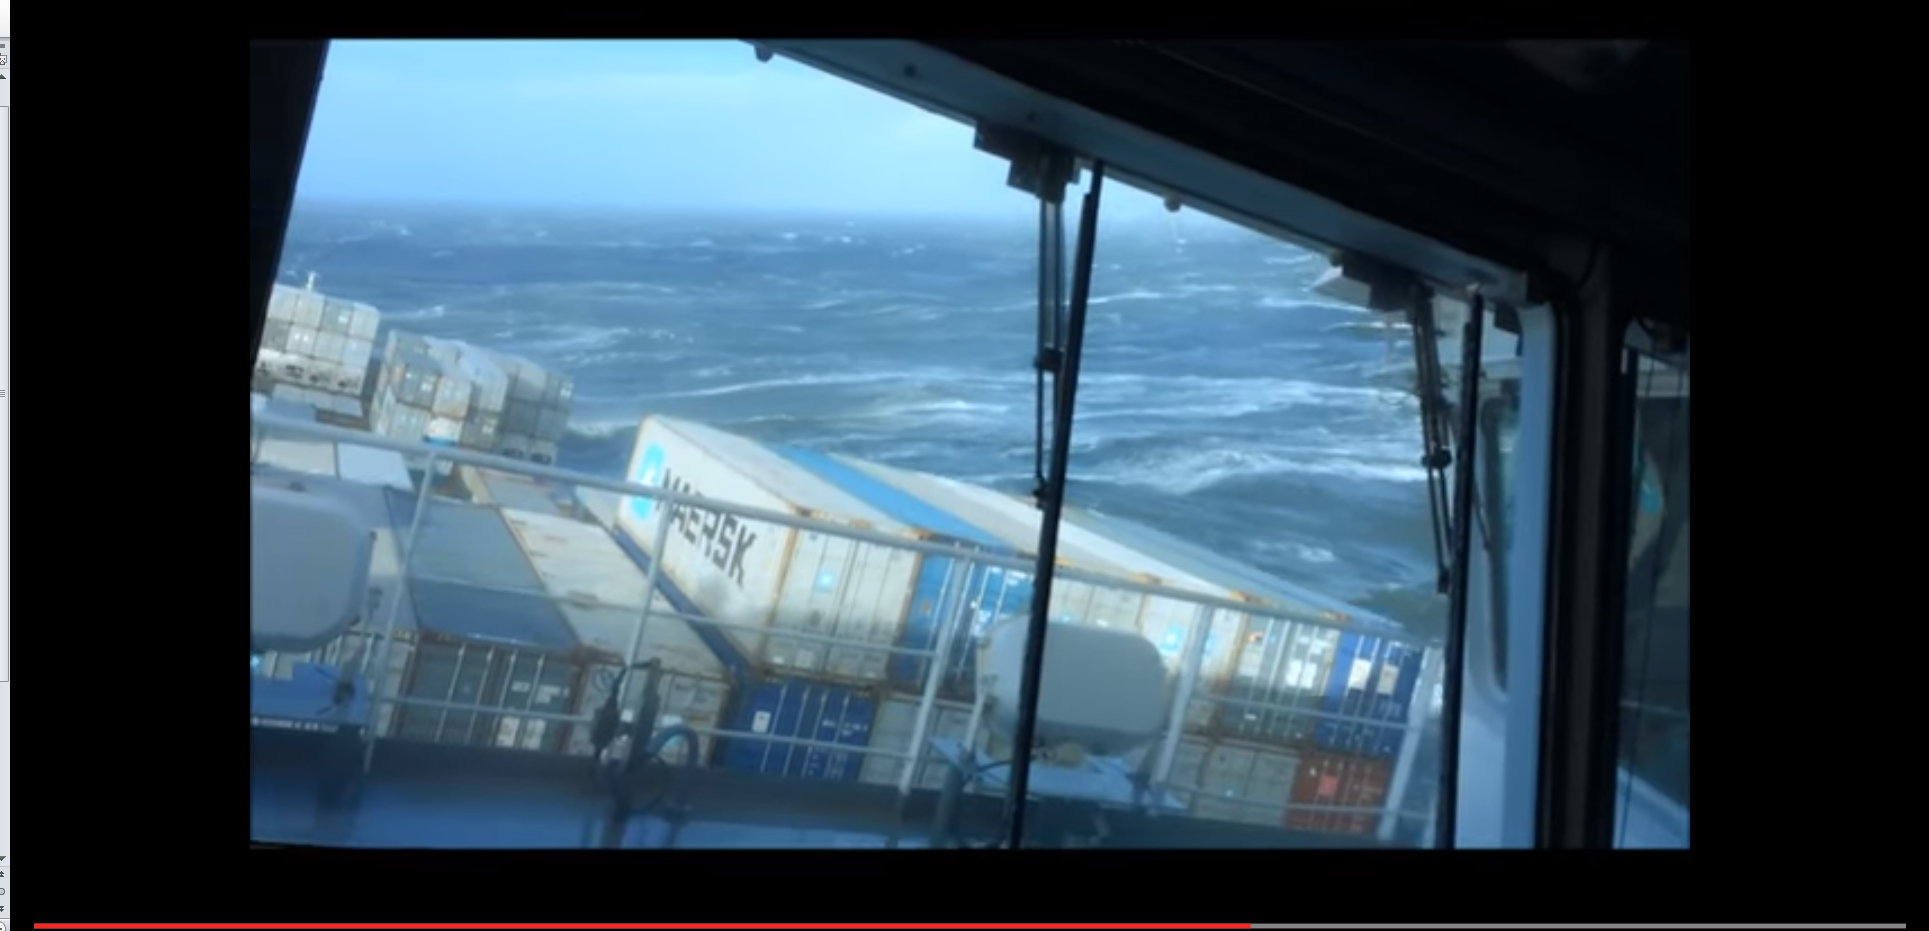 Choppy waves hit this vessel in the North Sea